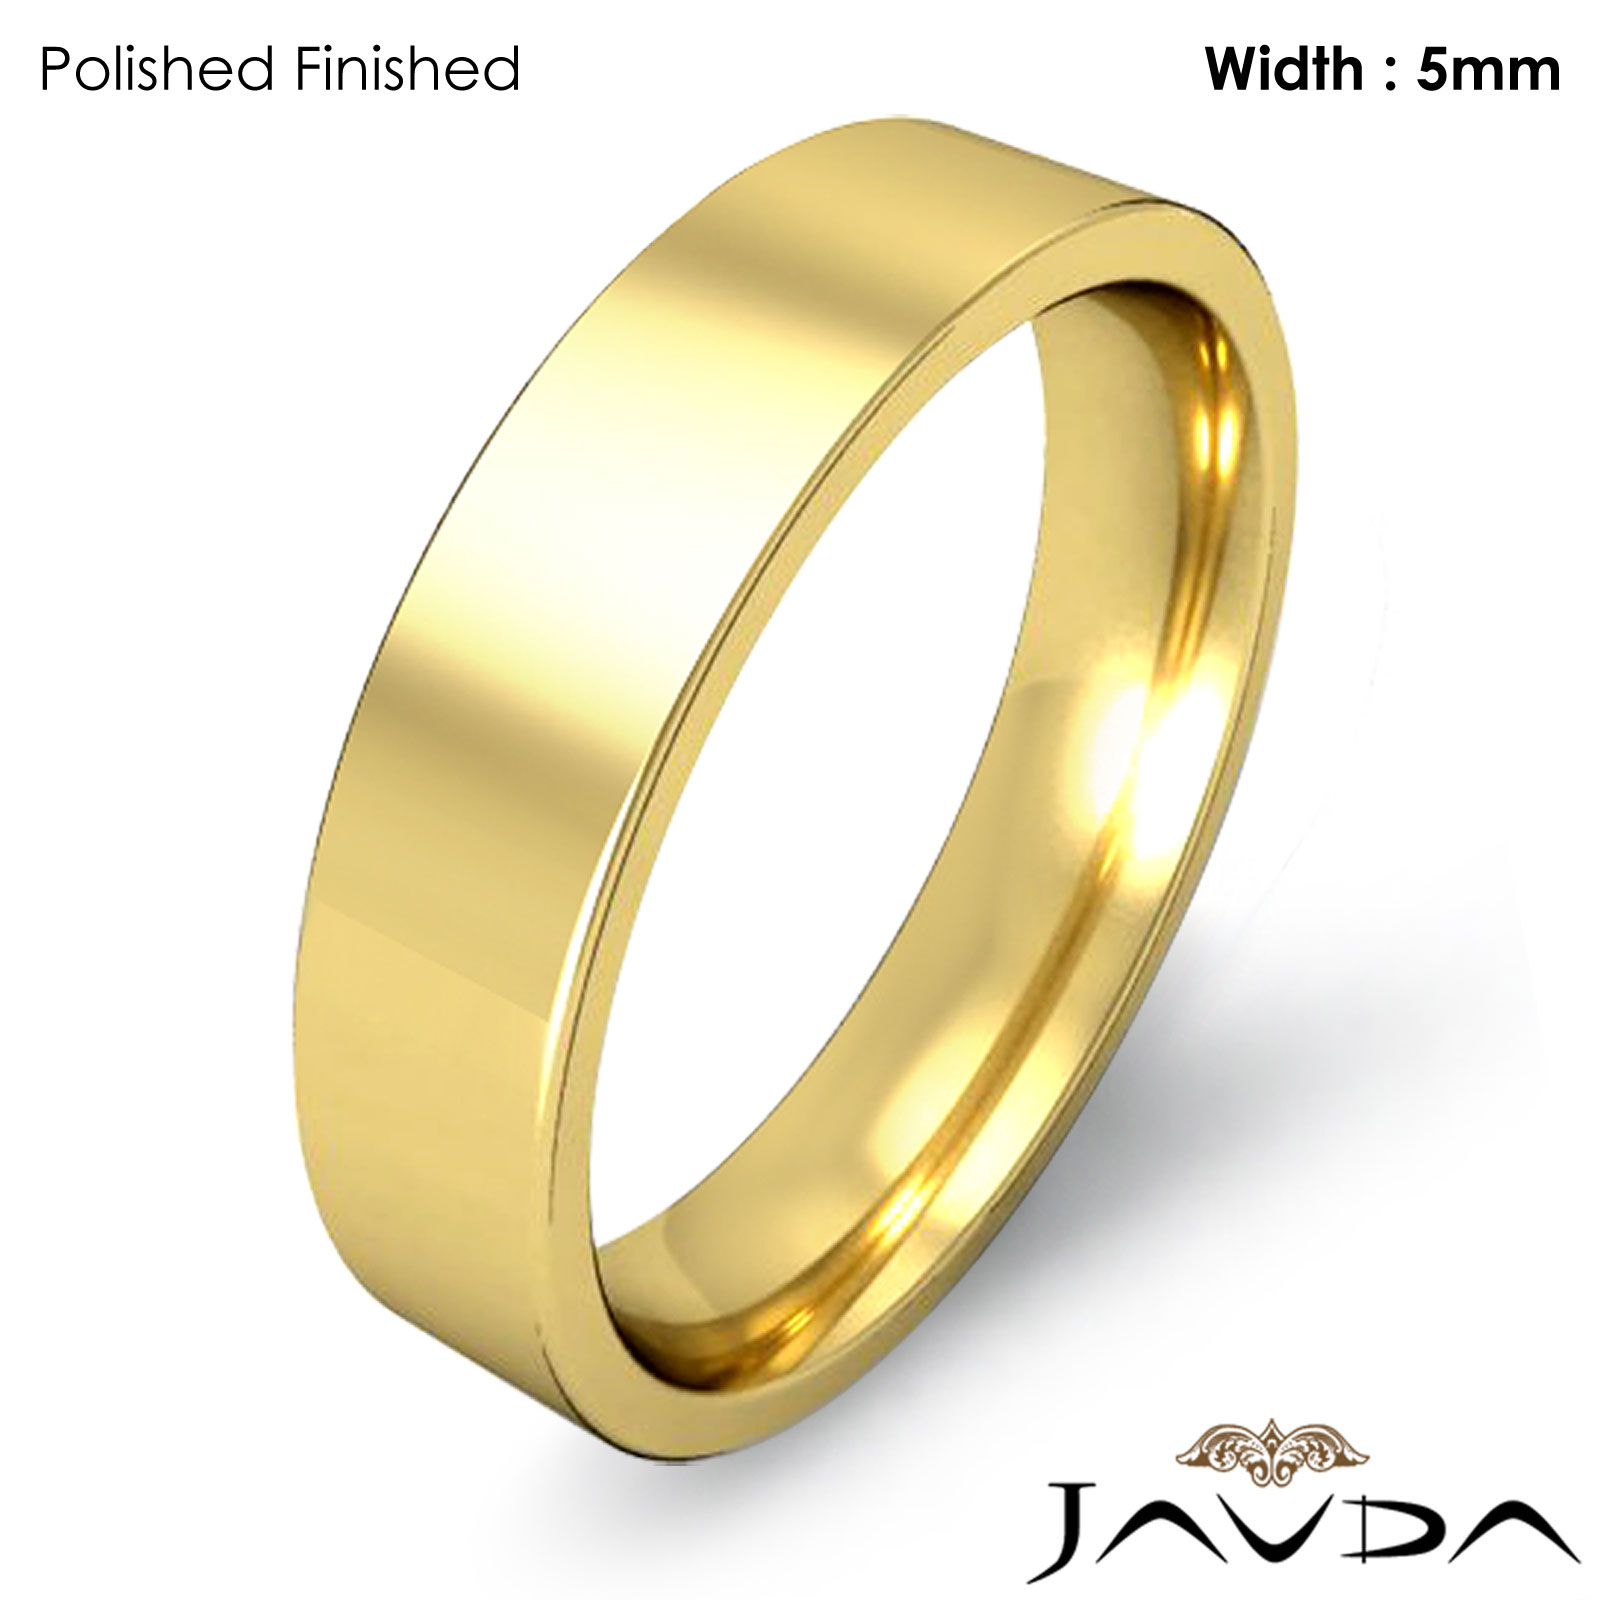 ... Gold Comfort Fit Men Wedding Band Pipe Cut Ring 7gm Size 11-11.75